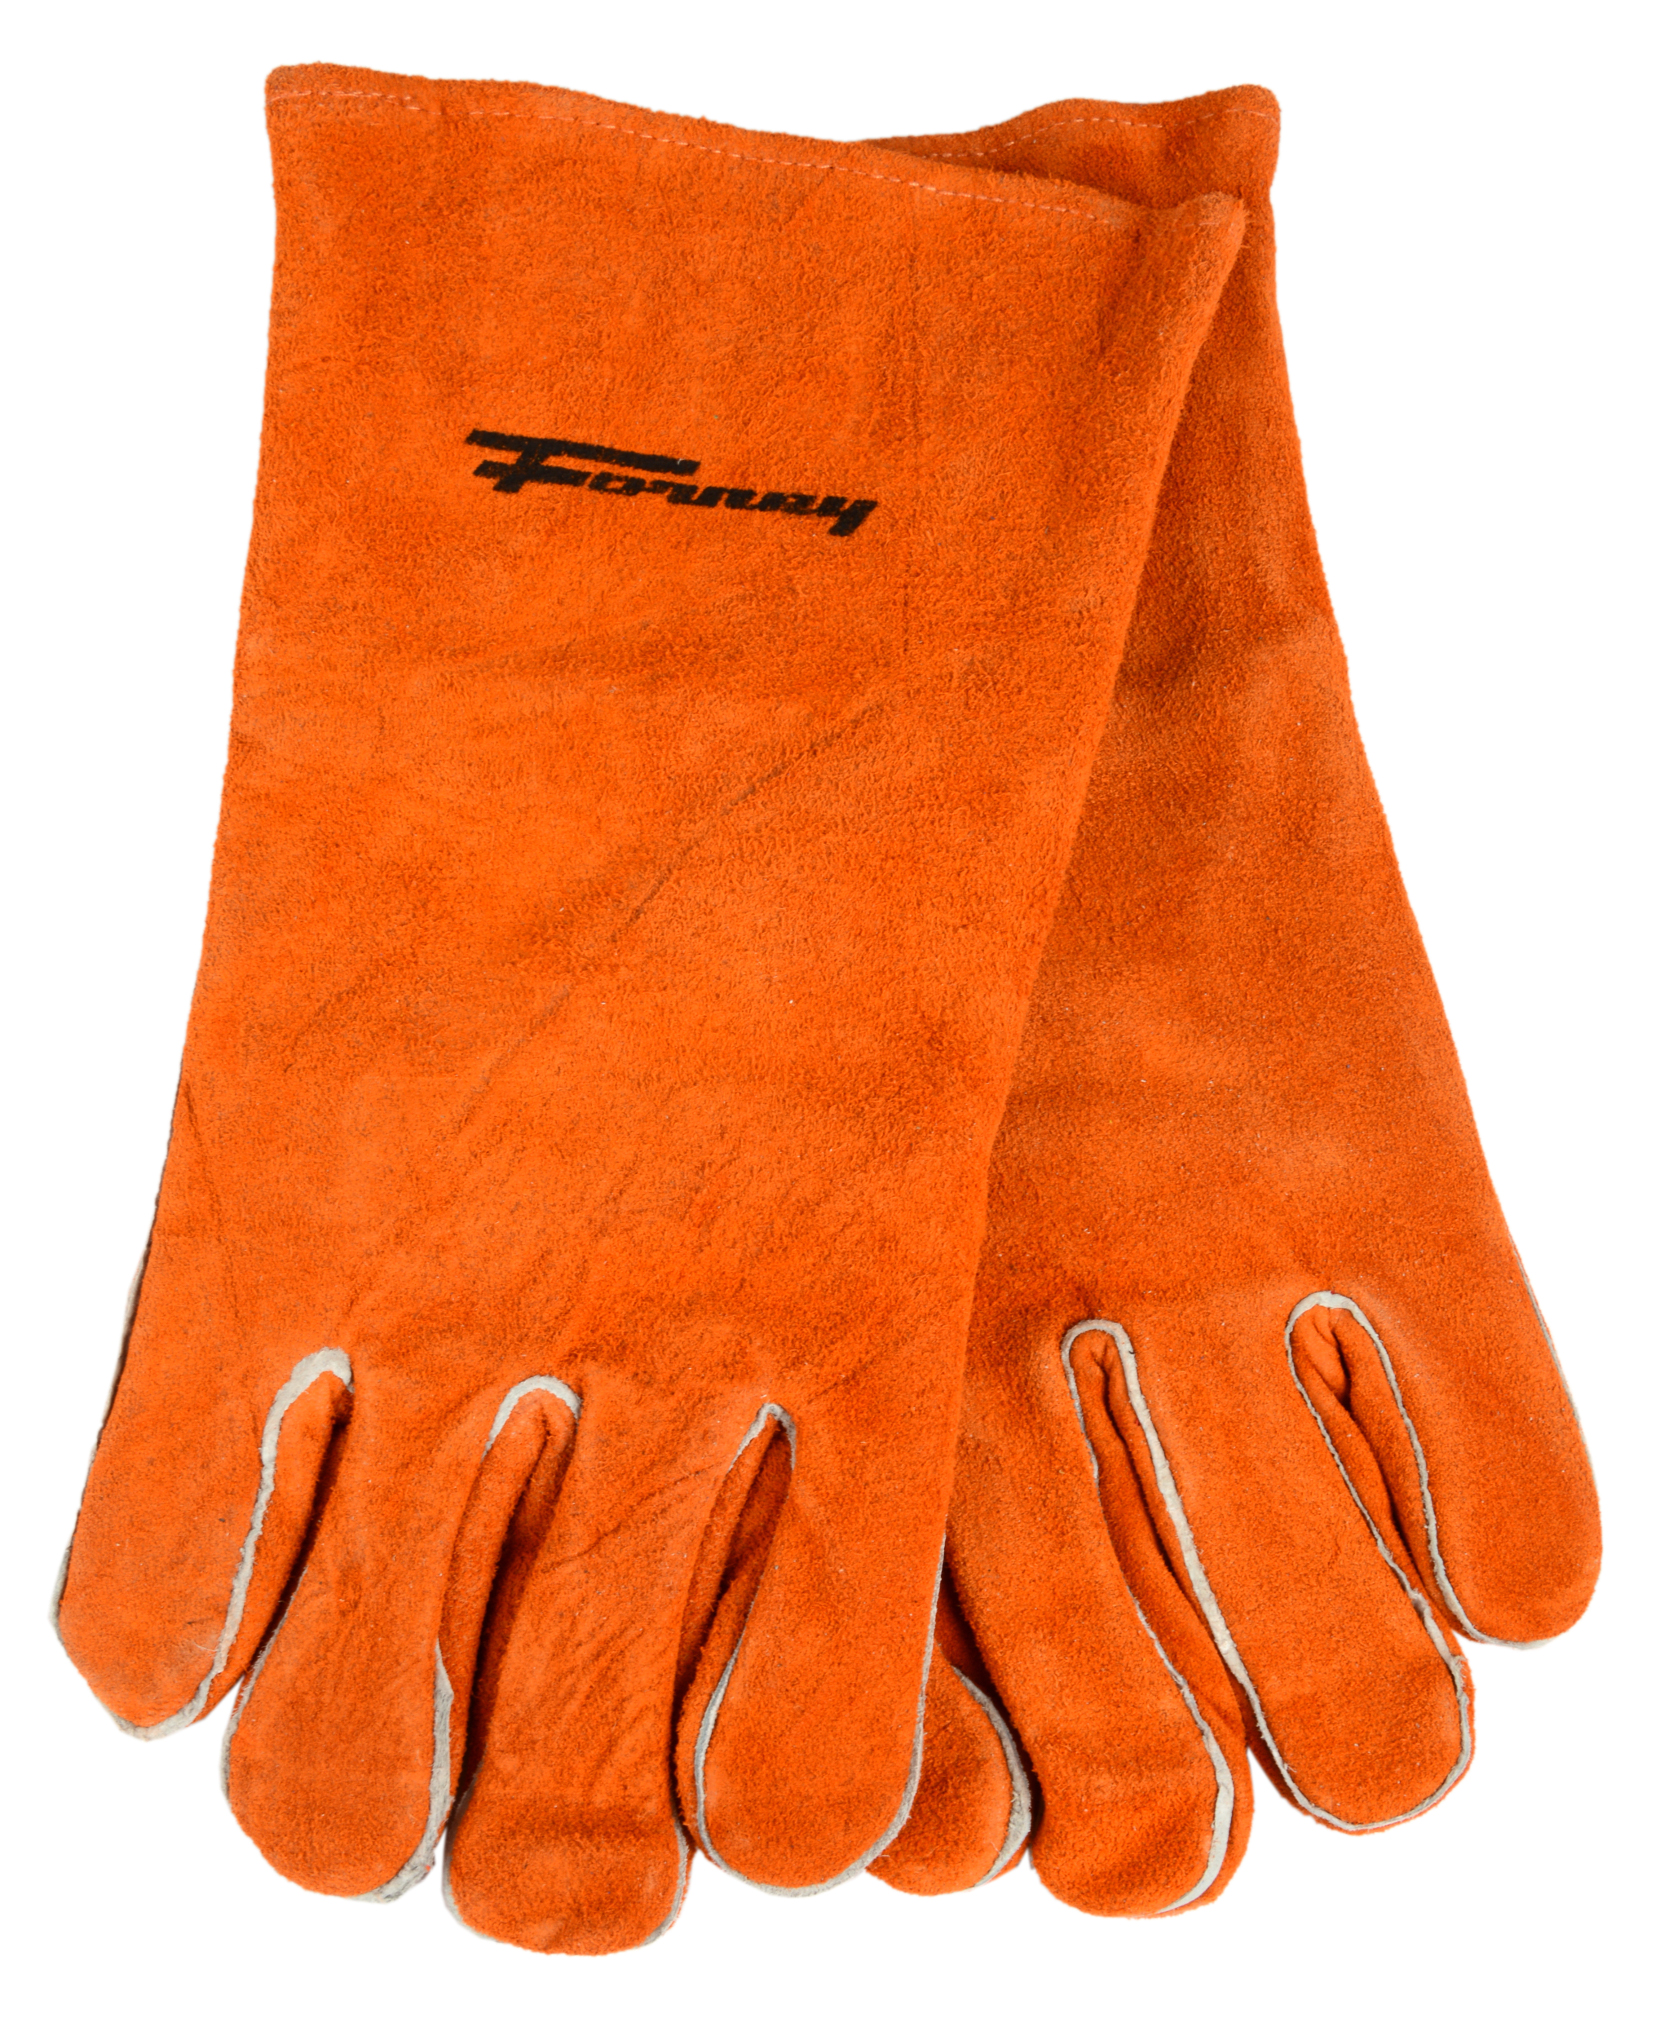 Forney Brown Leather Men's Welding Gloves X-Large